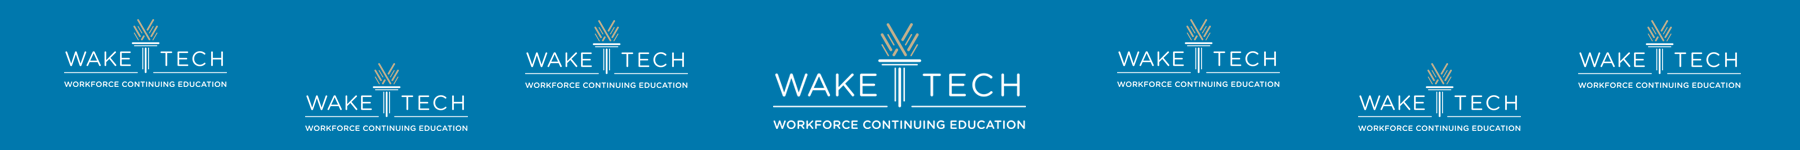 How to Apply | Wake Technical Community College